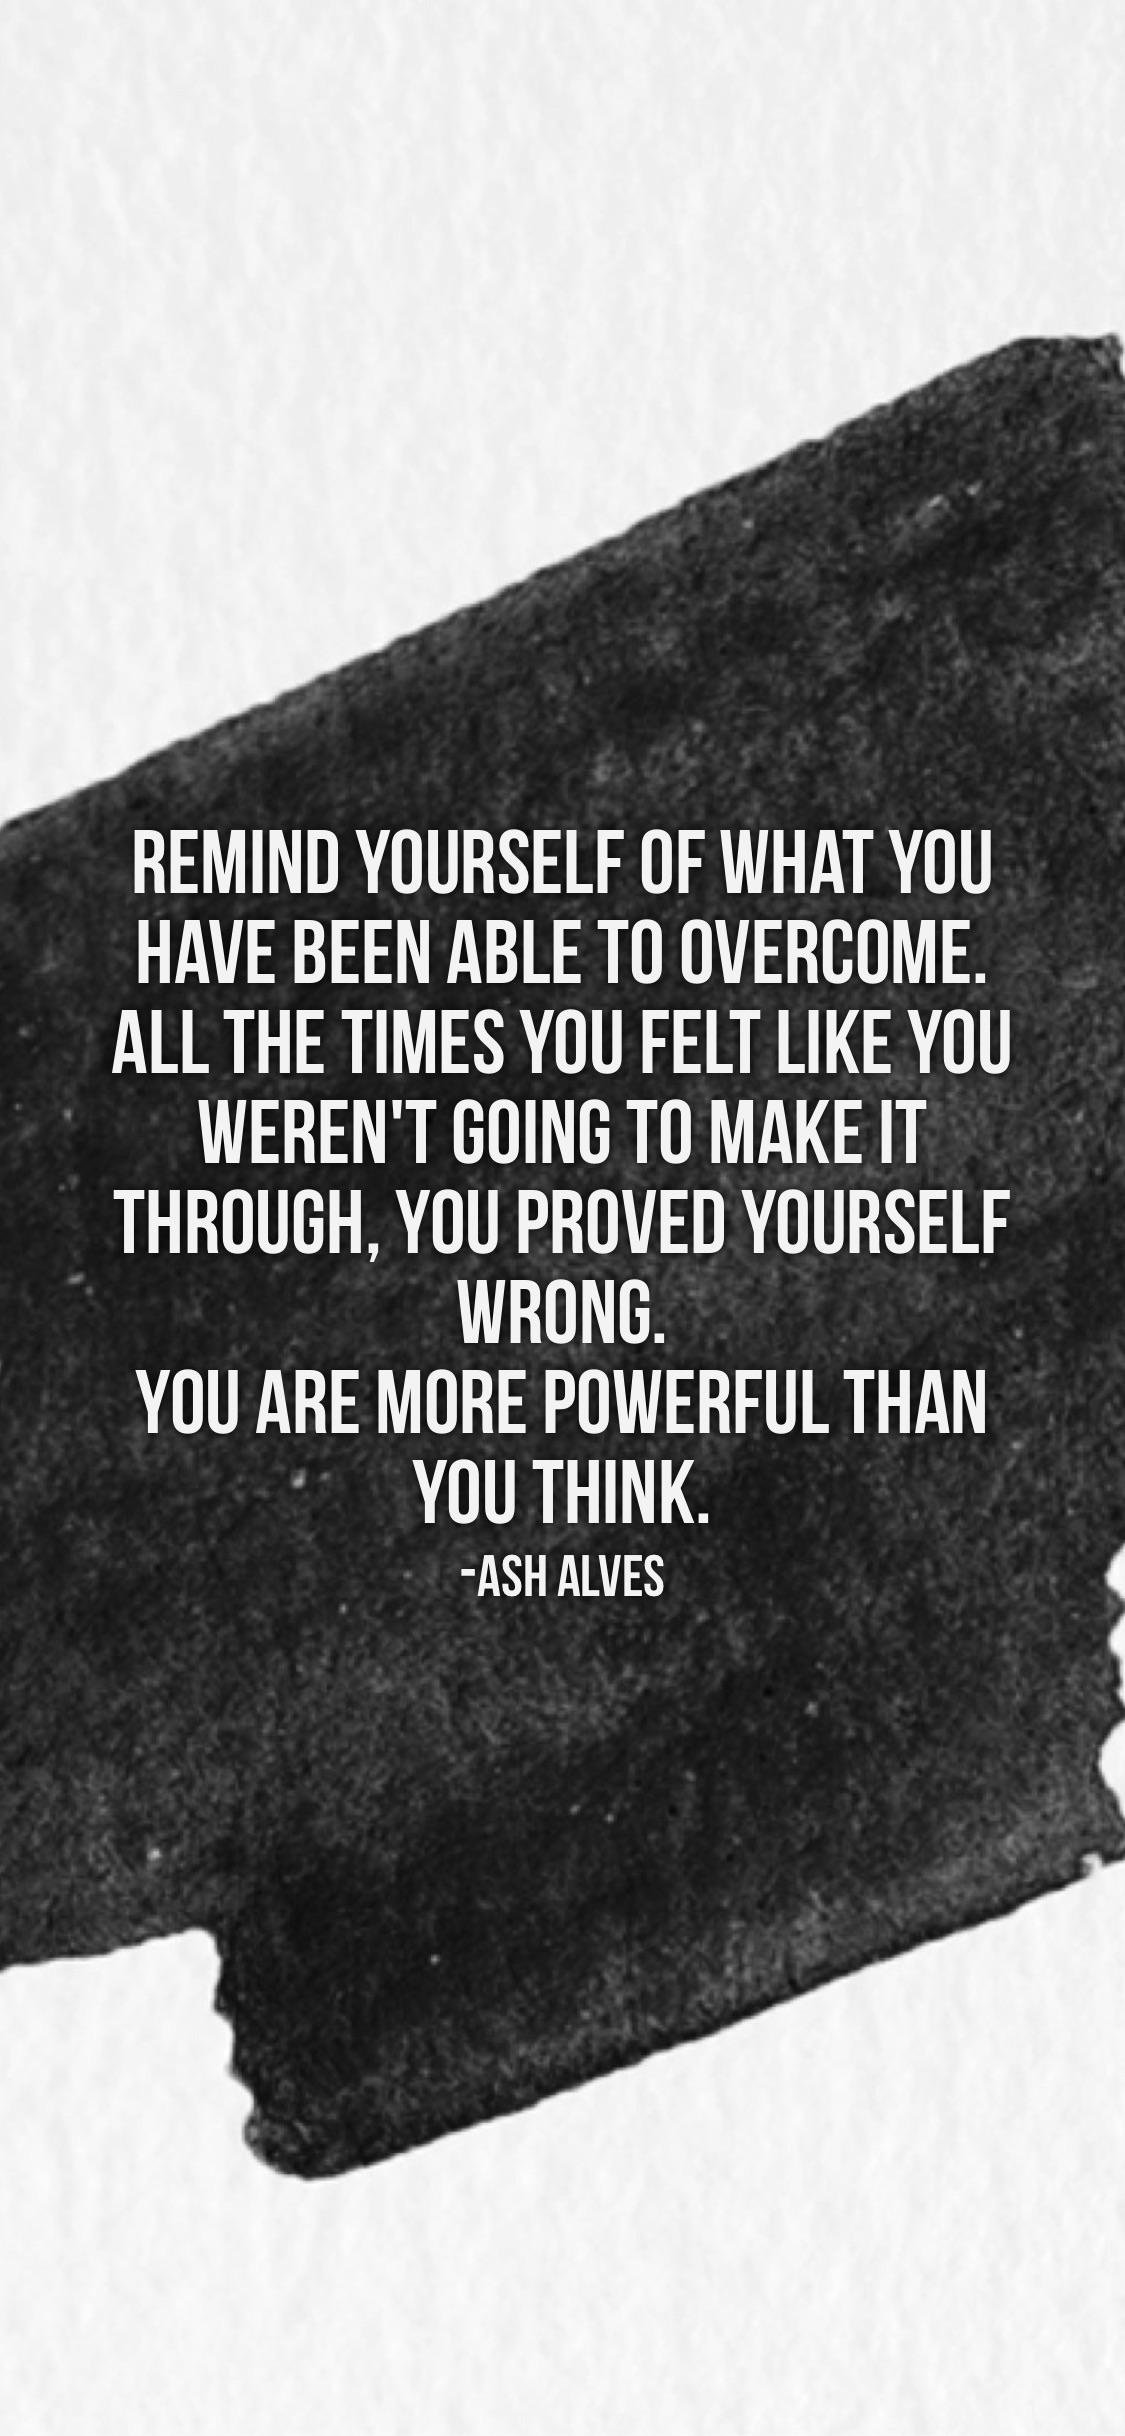 REMINO YOURSELF OF WHAT YOU HAVE BEEN ABLE TO OVEROOME. ALL THE TIMES YOU FELT LIKE YOU WEREN'T GOING TO MAKE IT THROUGH, YOU PROVEO YOURSELF WRONO. YOU ARE MORE POWERFUL THAN ' YOU THINK. -ASHALVES 4 https://inspirational.ly